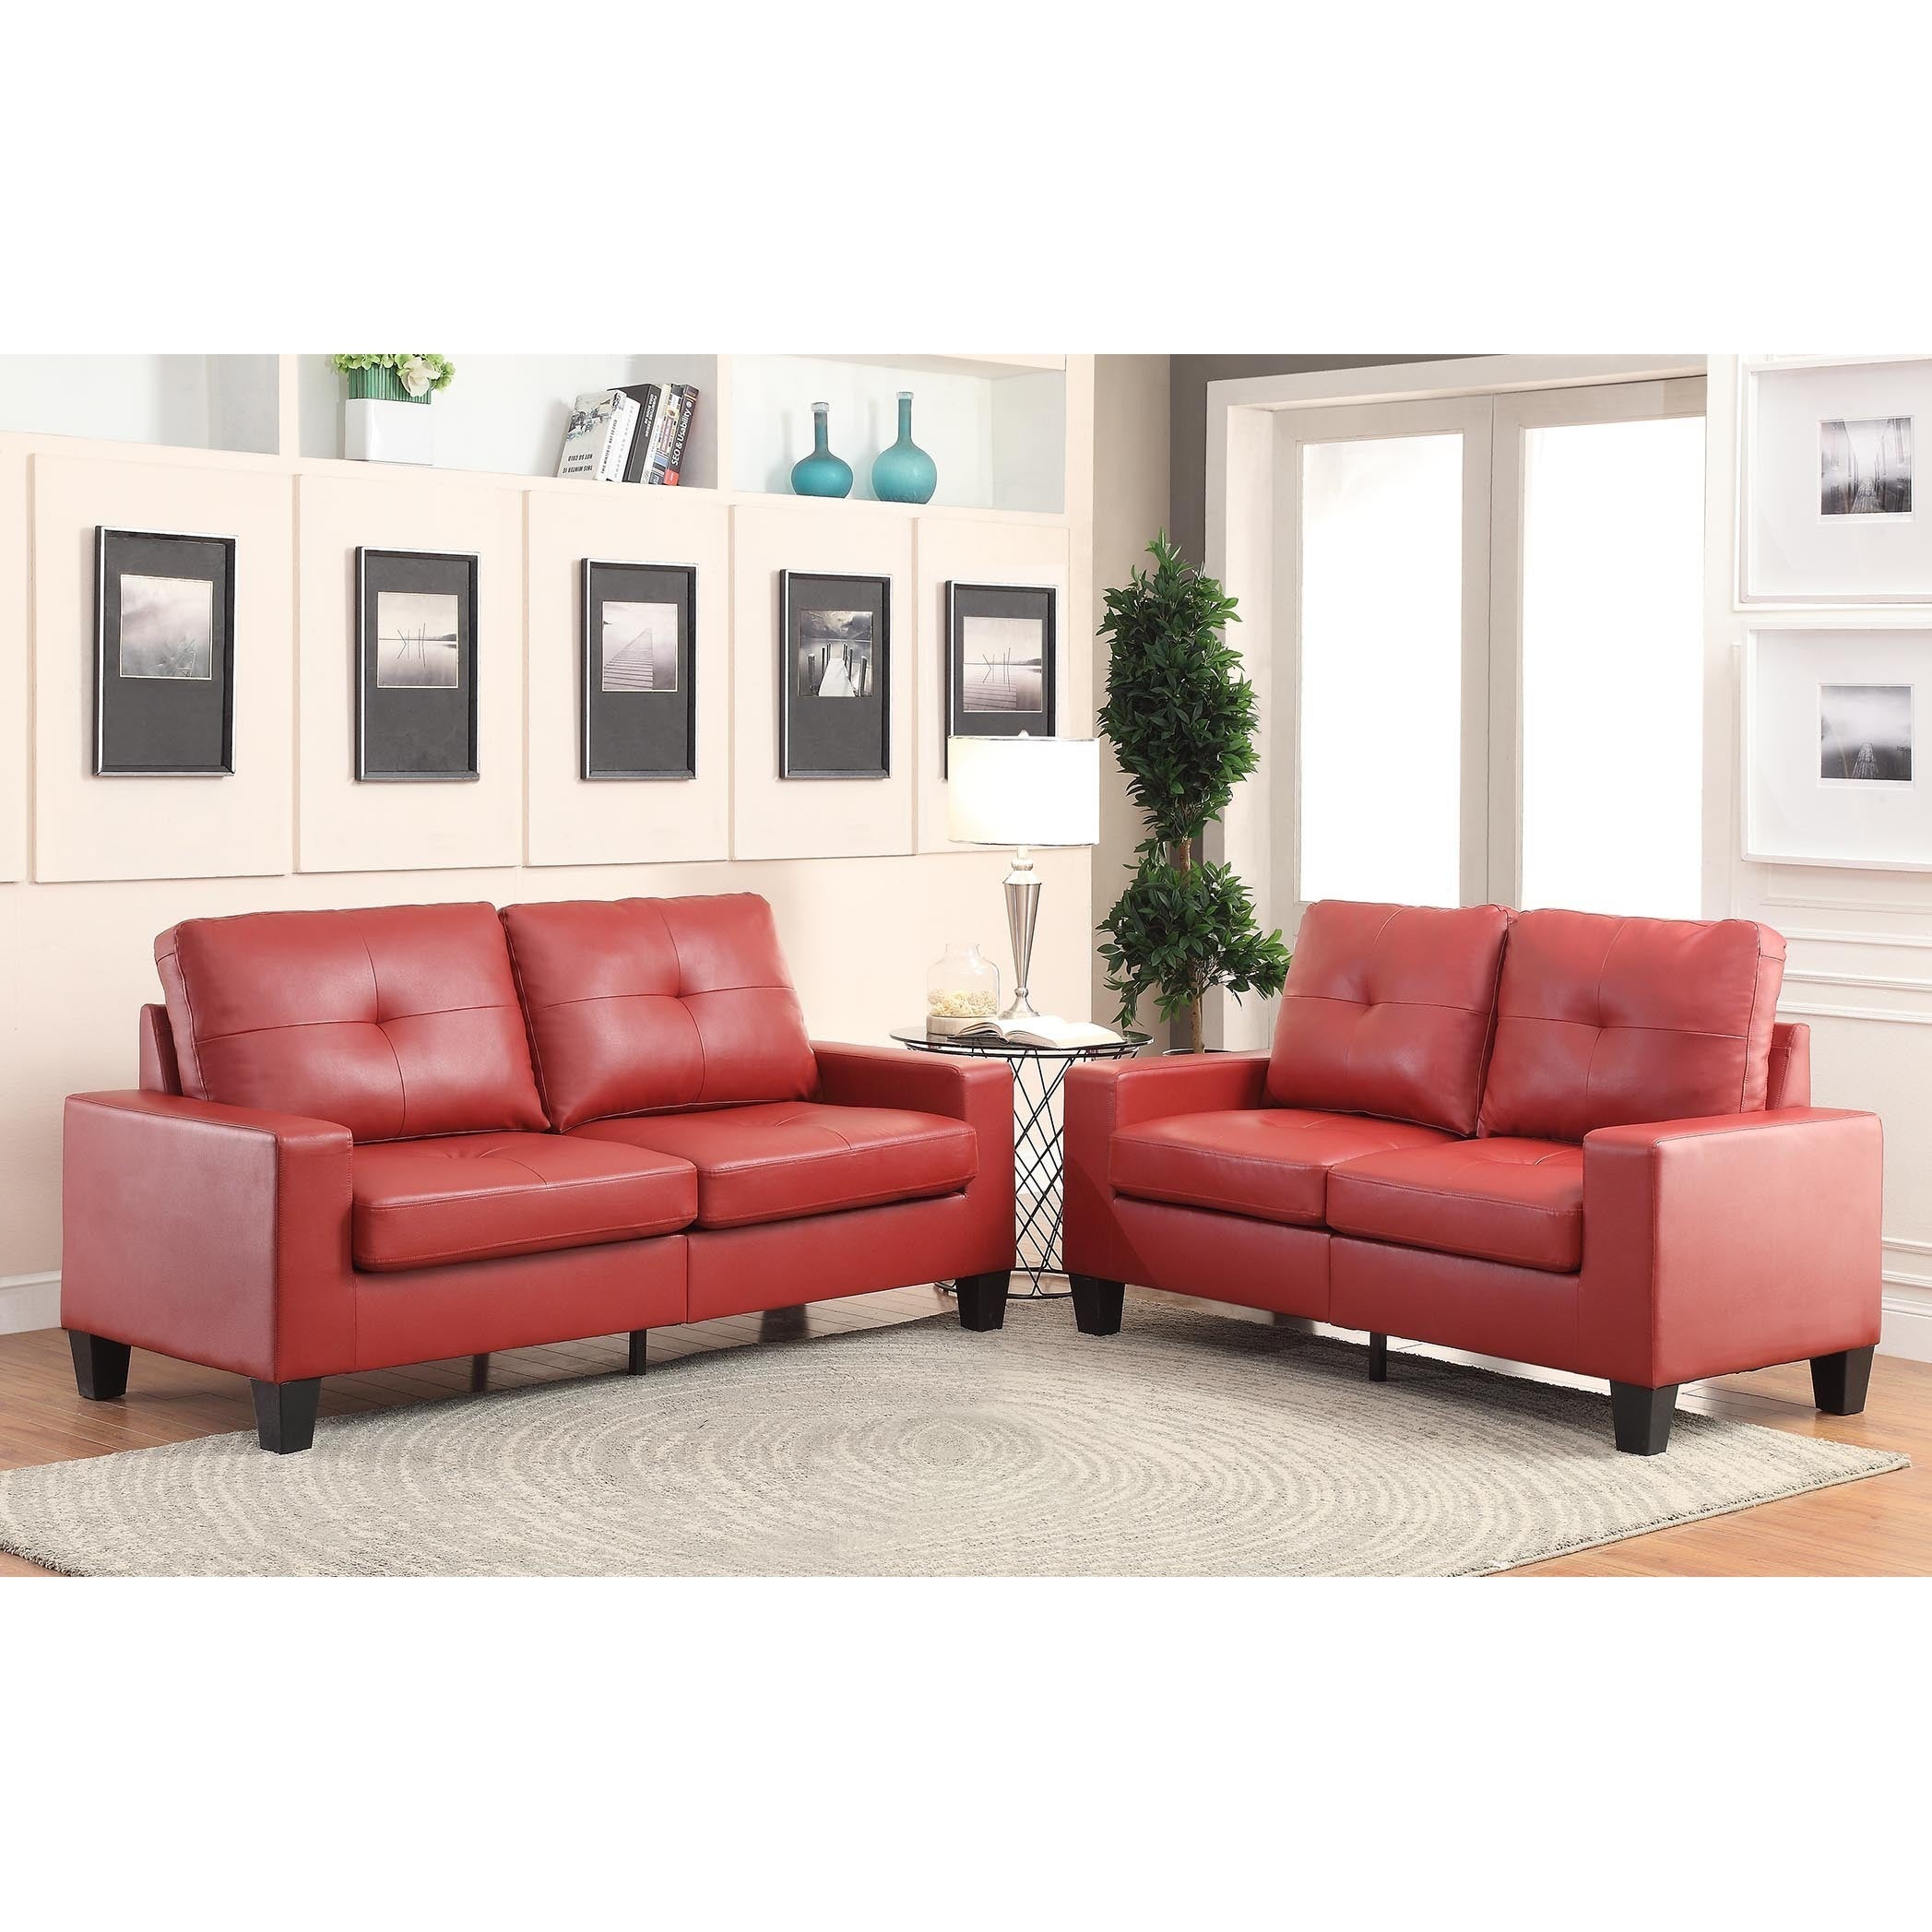 Acme Furniture Platinum II Sofa And Loveseat Living Room Set (Option: Red)